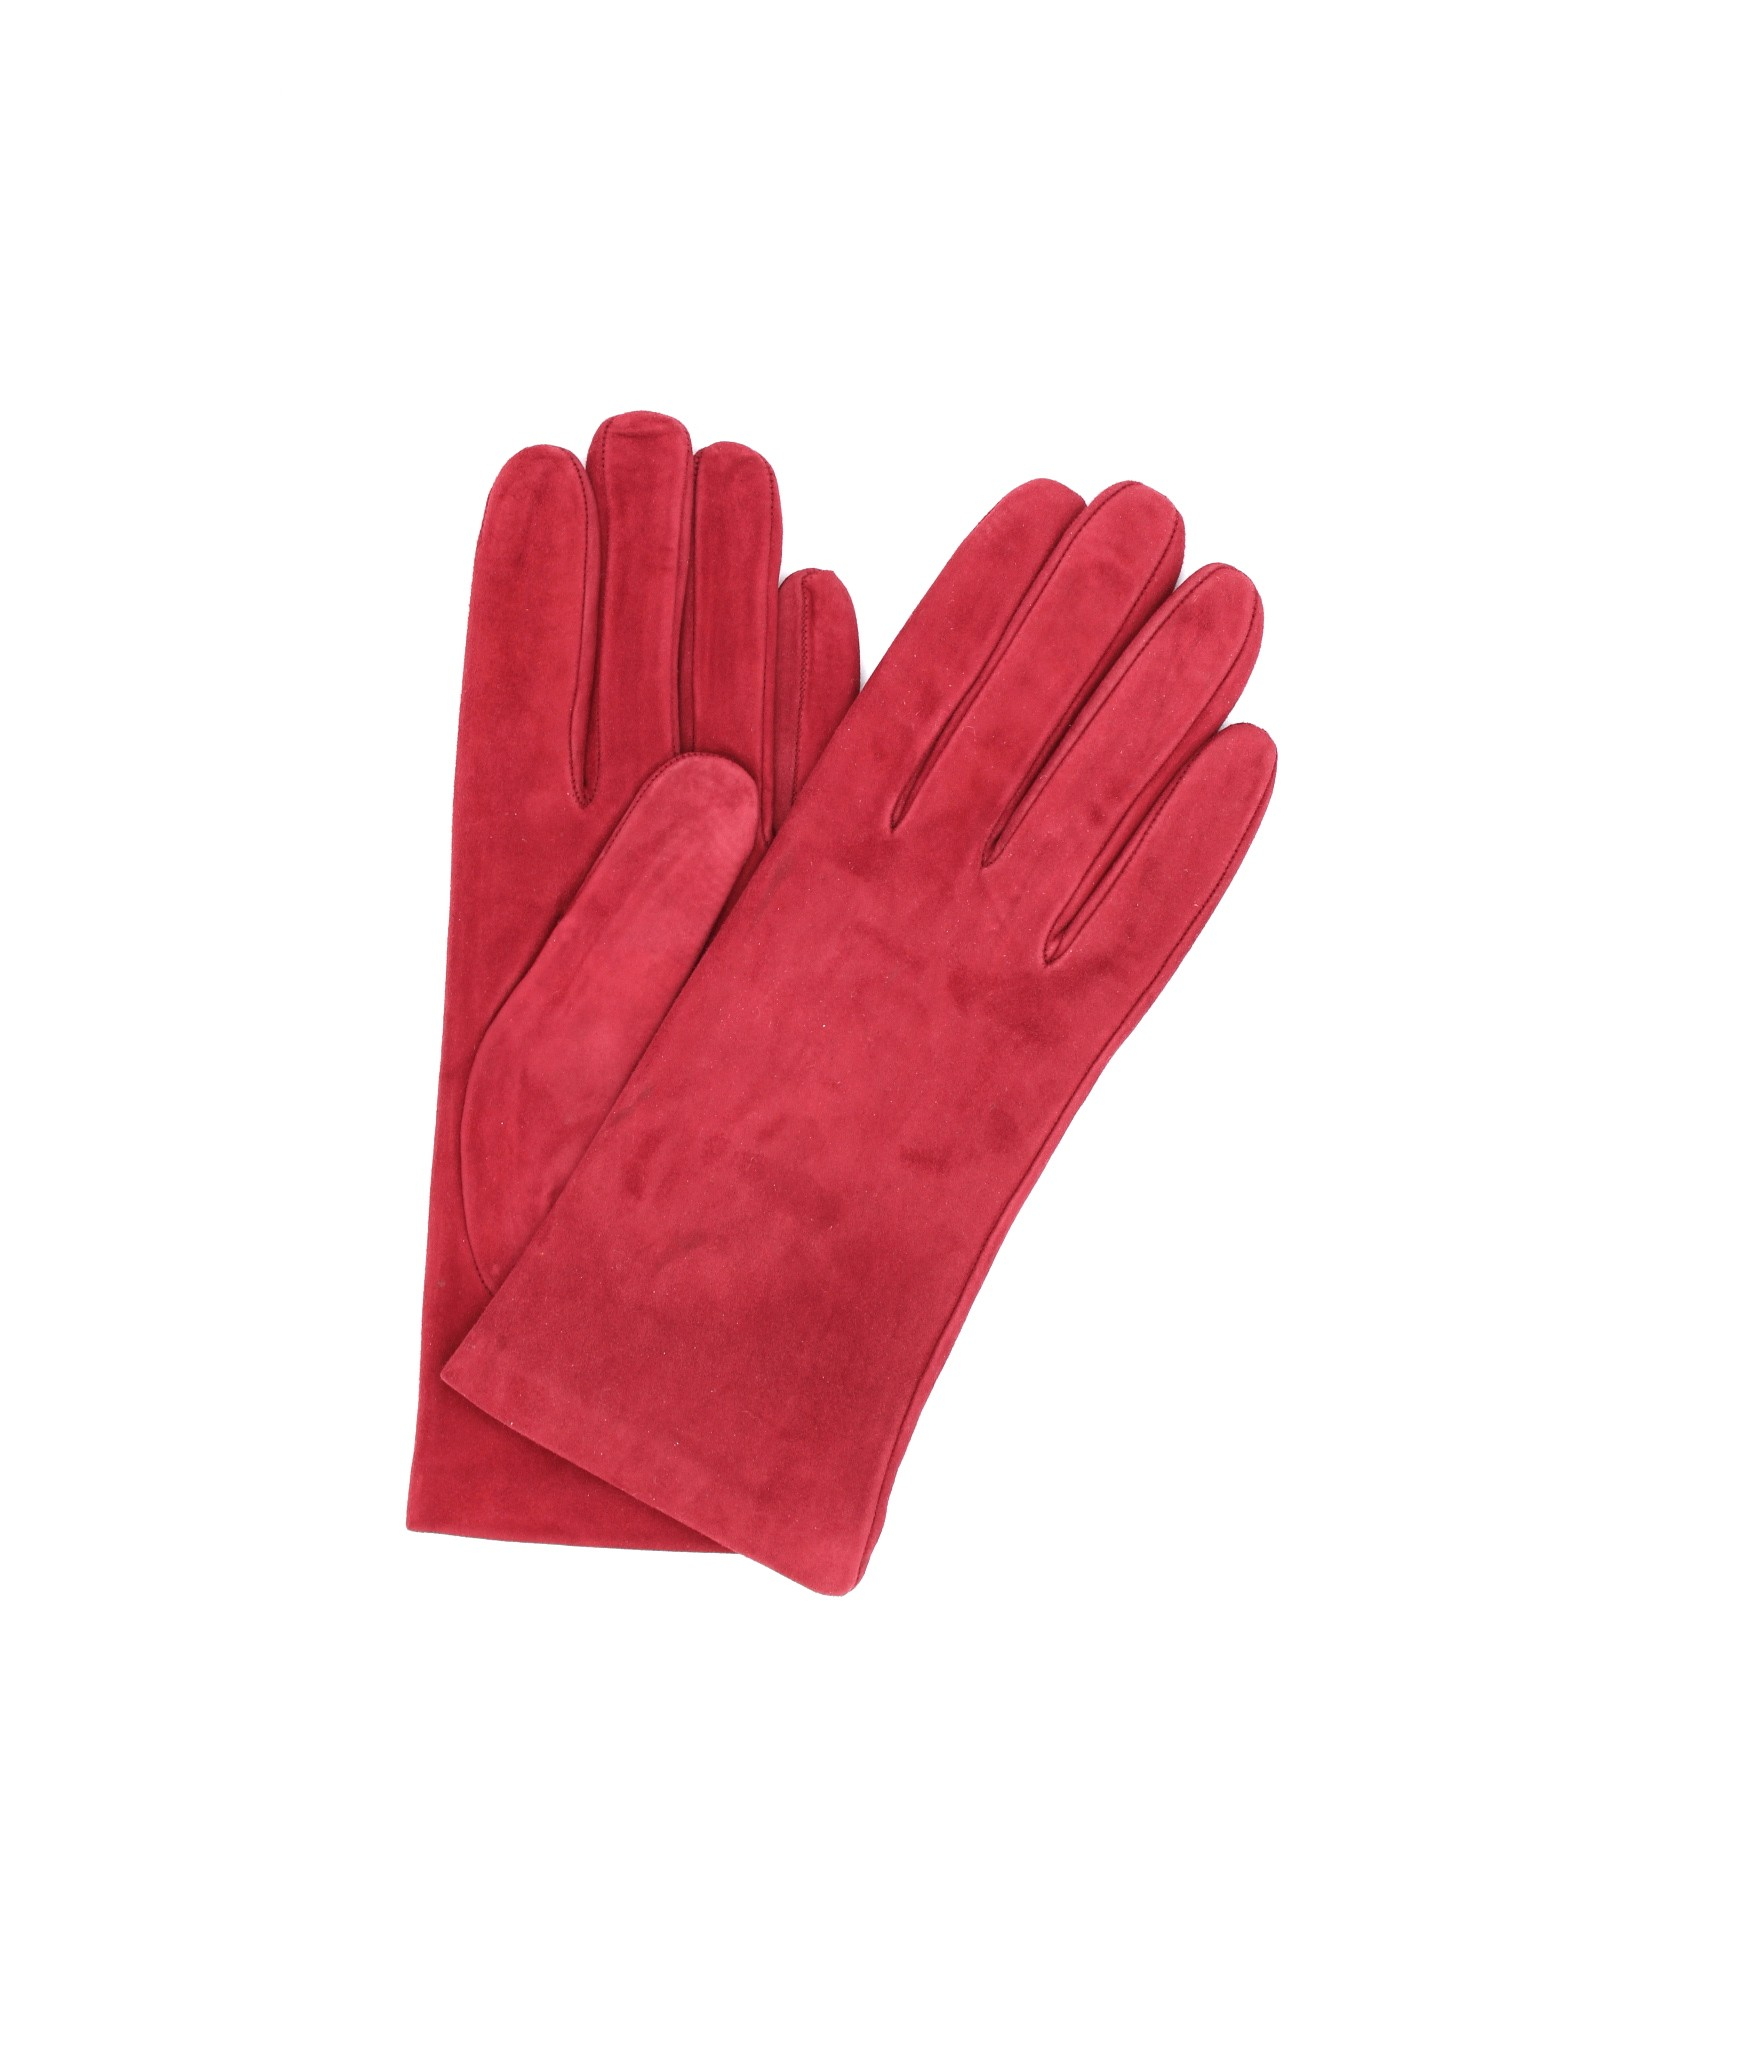 Suede Nappa leather gloves lined Cashmere Dark Red Sermoneta